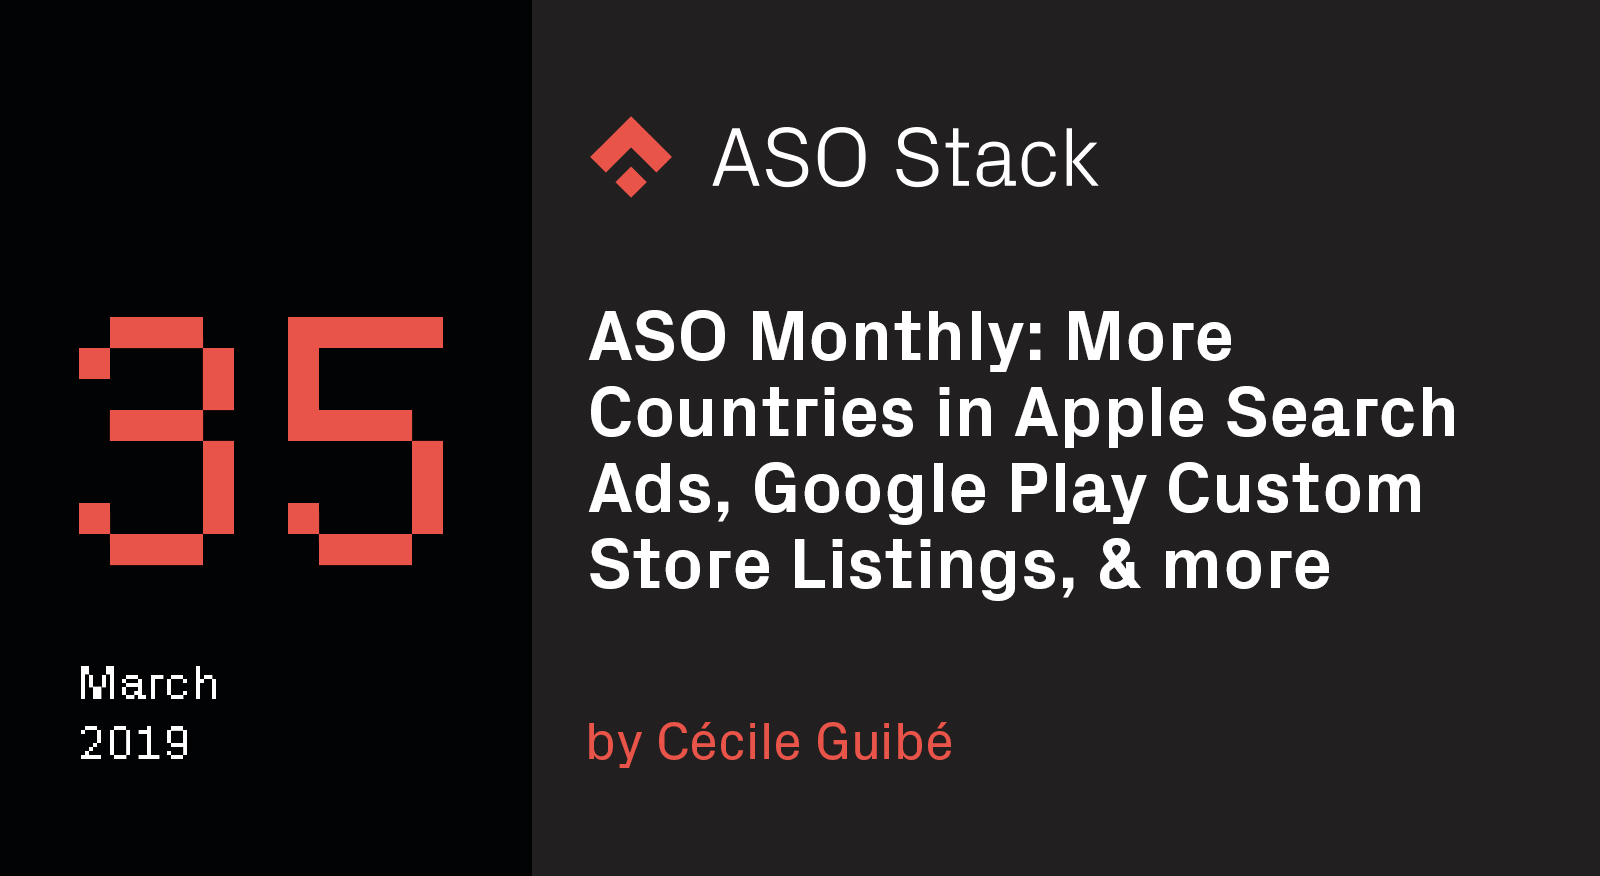 ASO Monthly #35 March 2019- More Countries in Apple Search Ads, Google Play Custom Store Listings and more